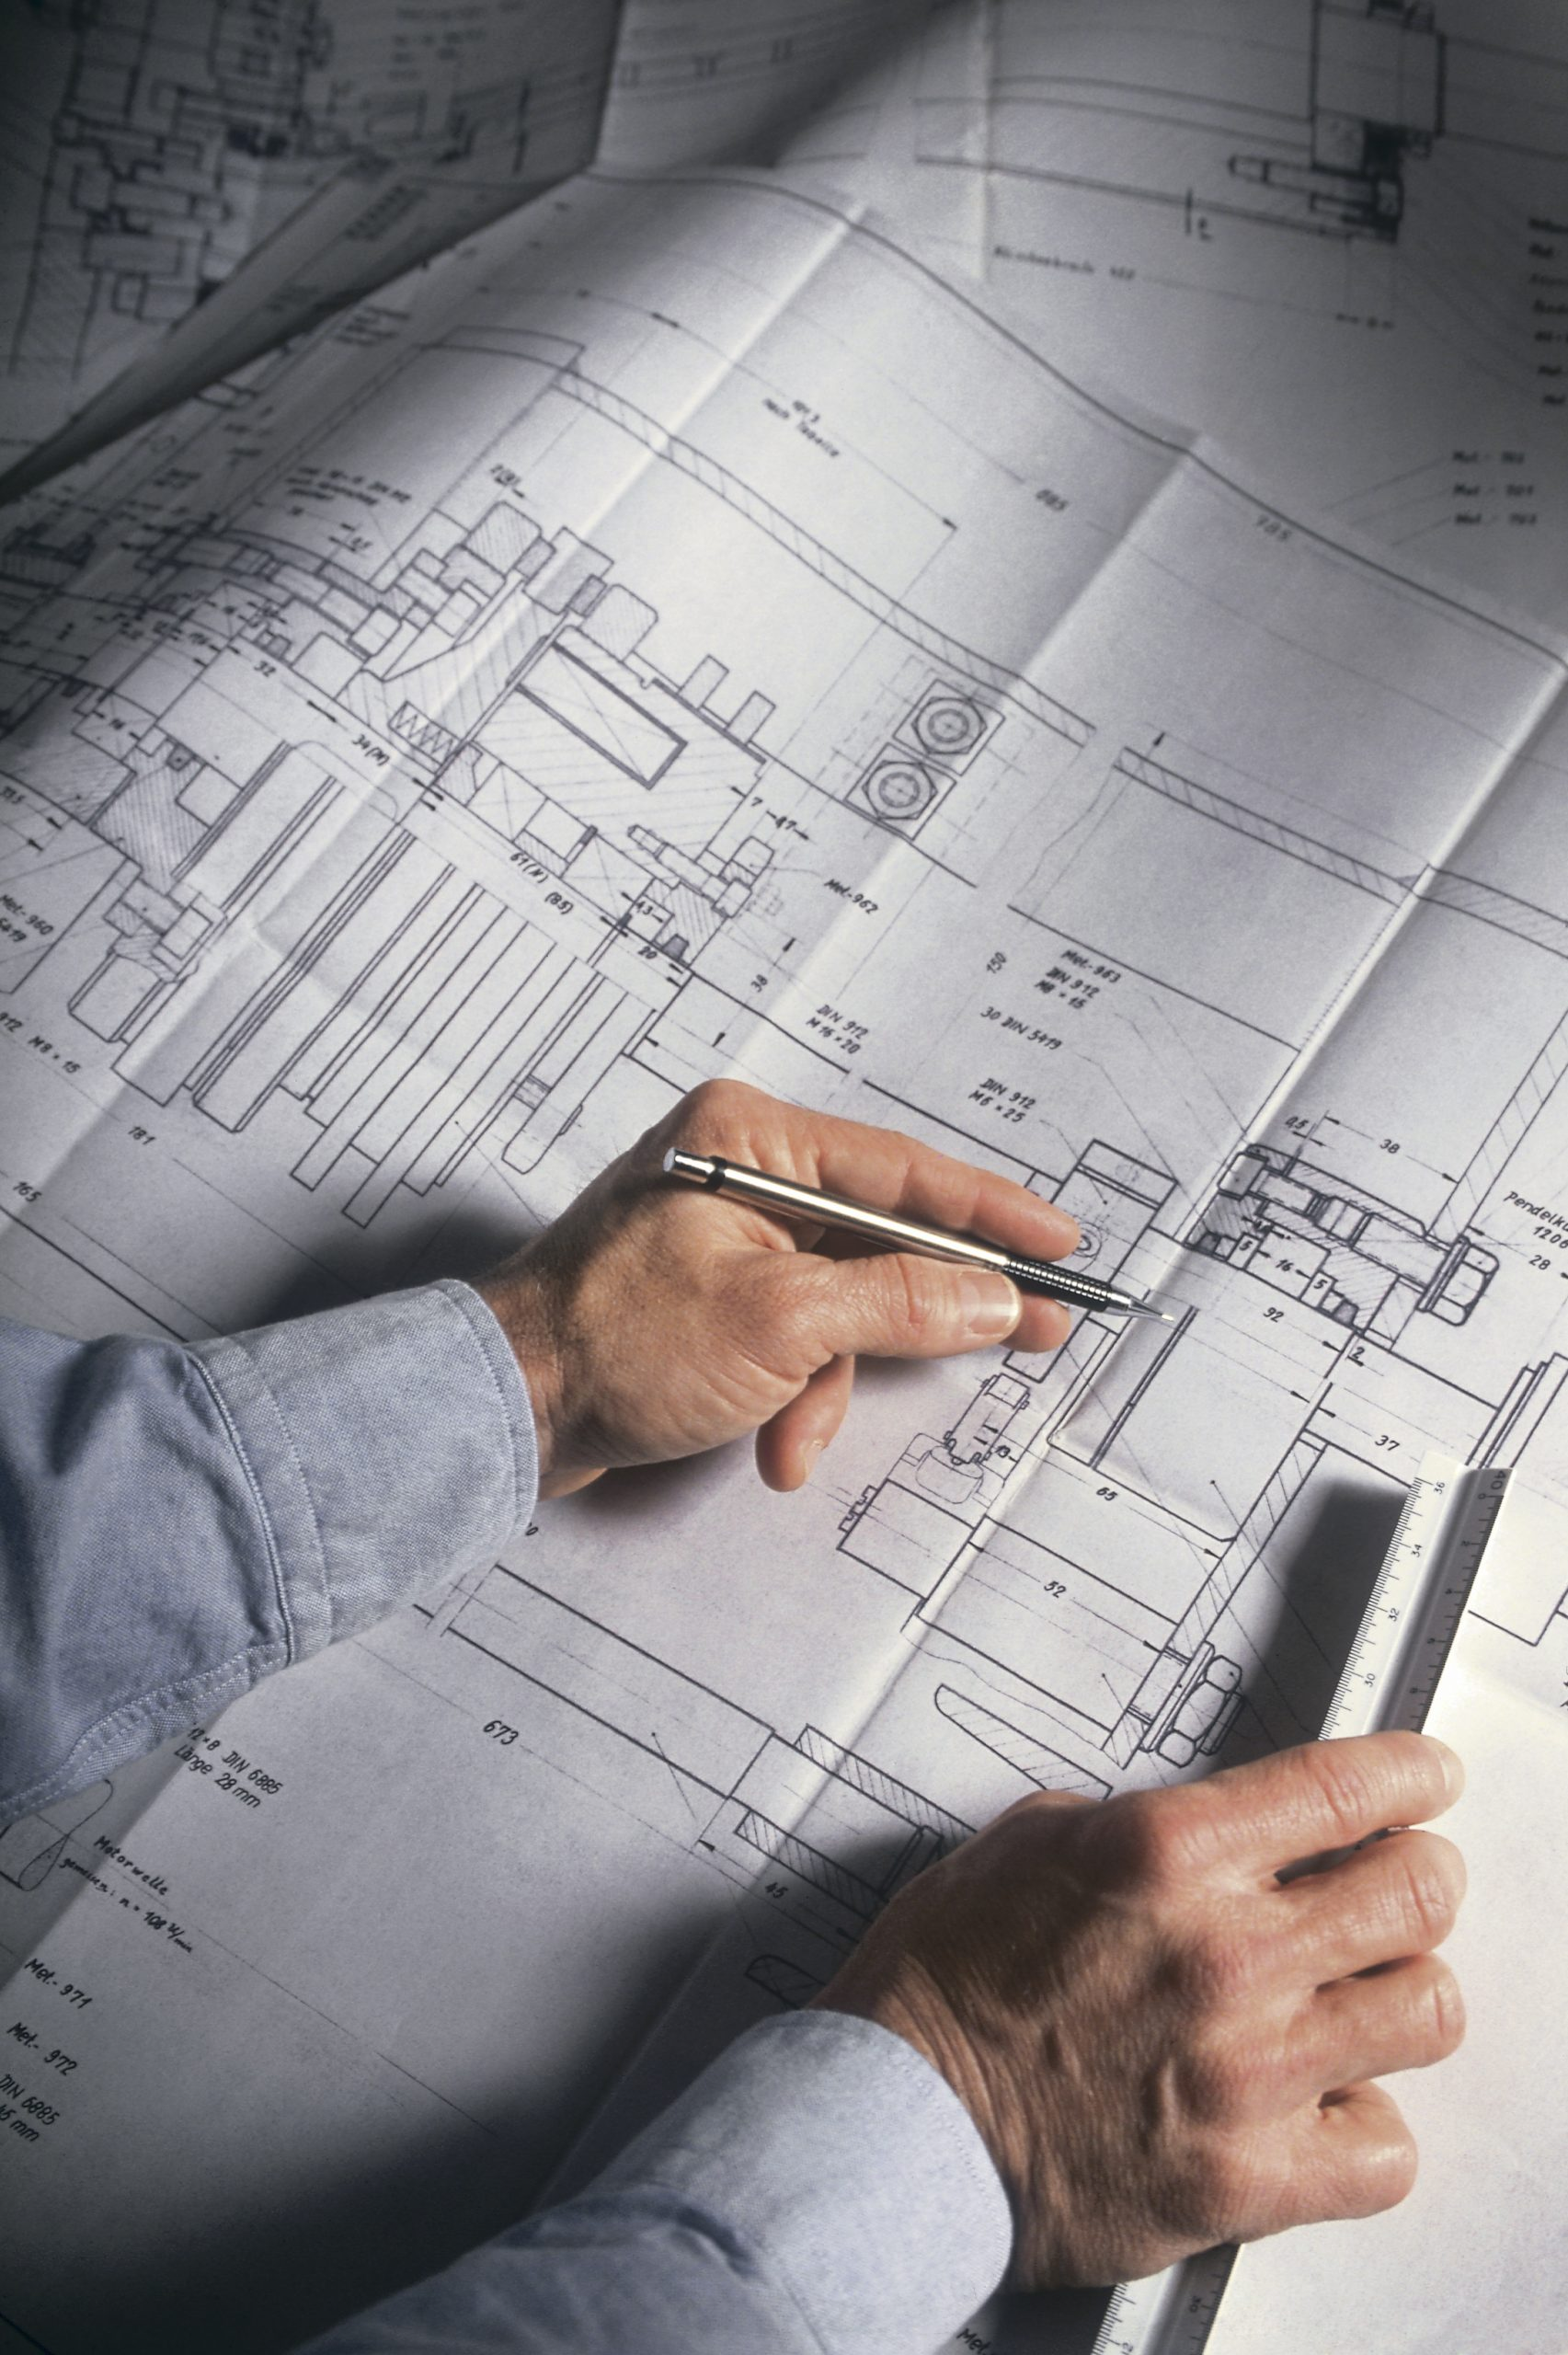 Structural Engineering and Blueprints